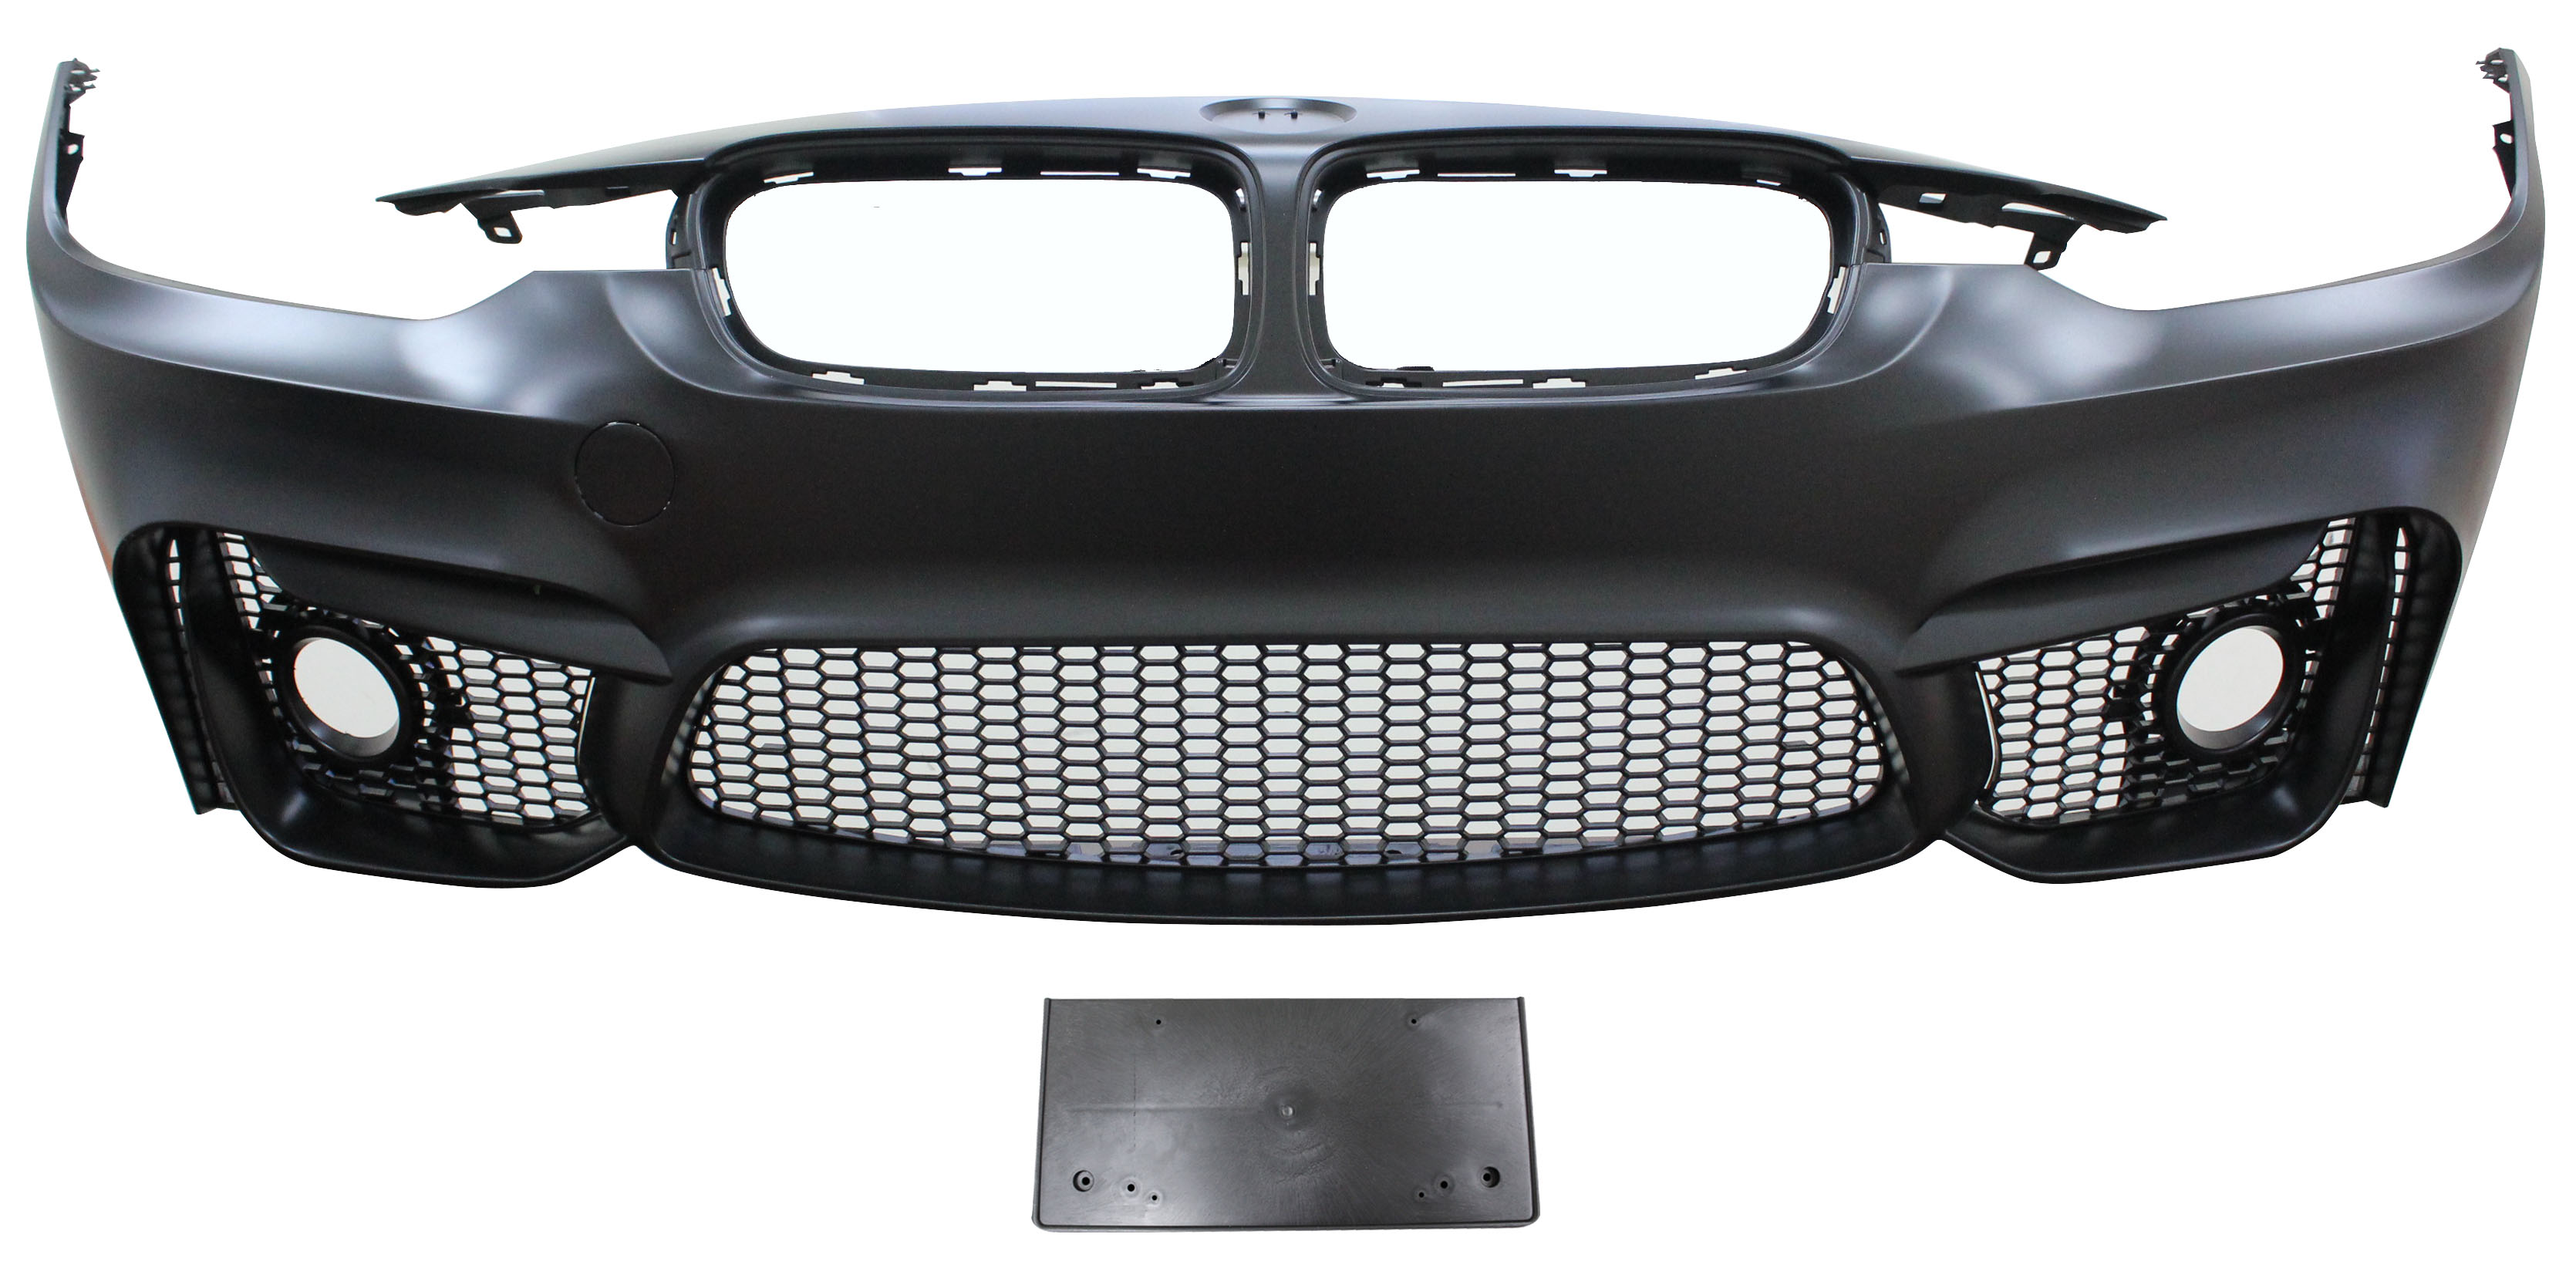 Replacement Car Parts for Bmw 3 series Front bumper m3 style with grilles with spotlight holes